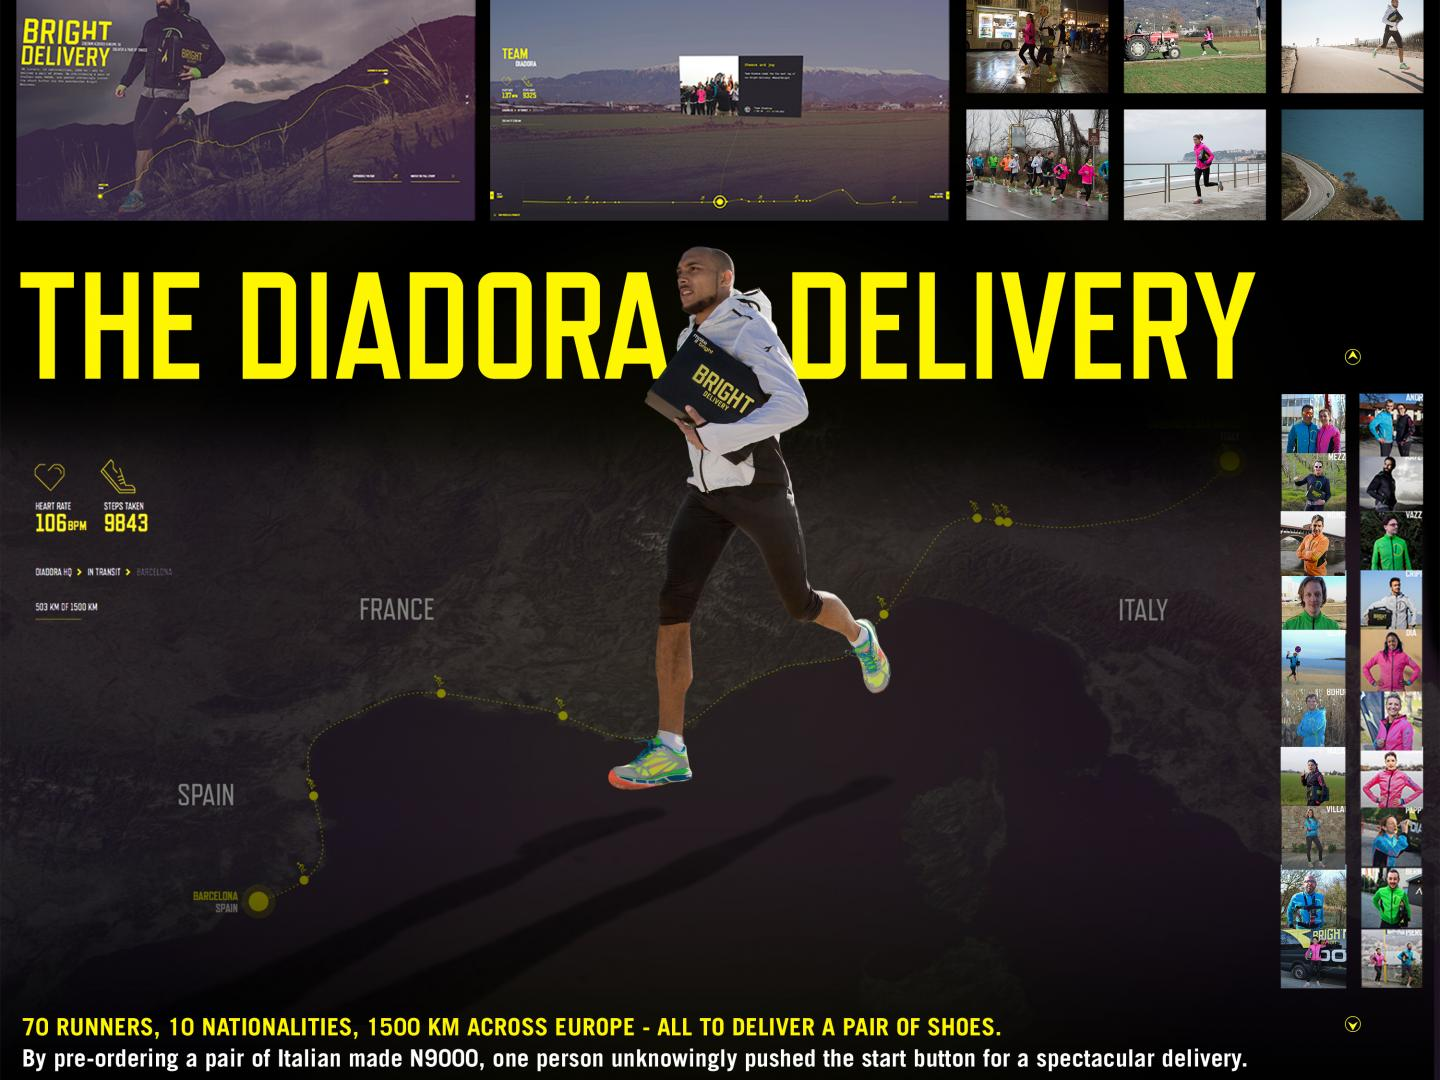 The Diadora Delivery Thumbnail